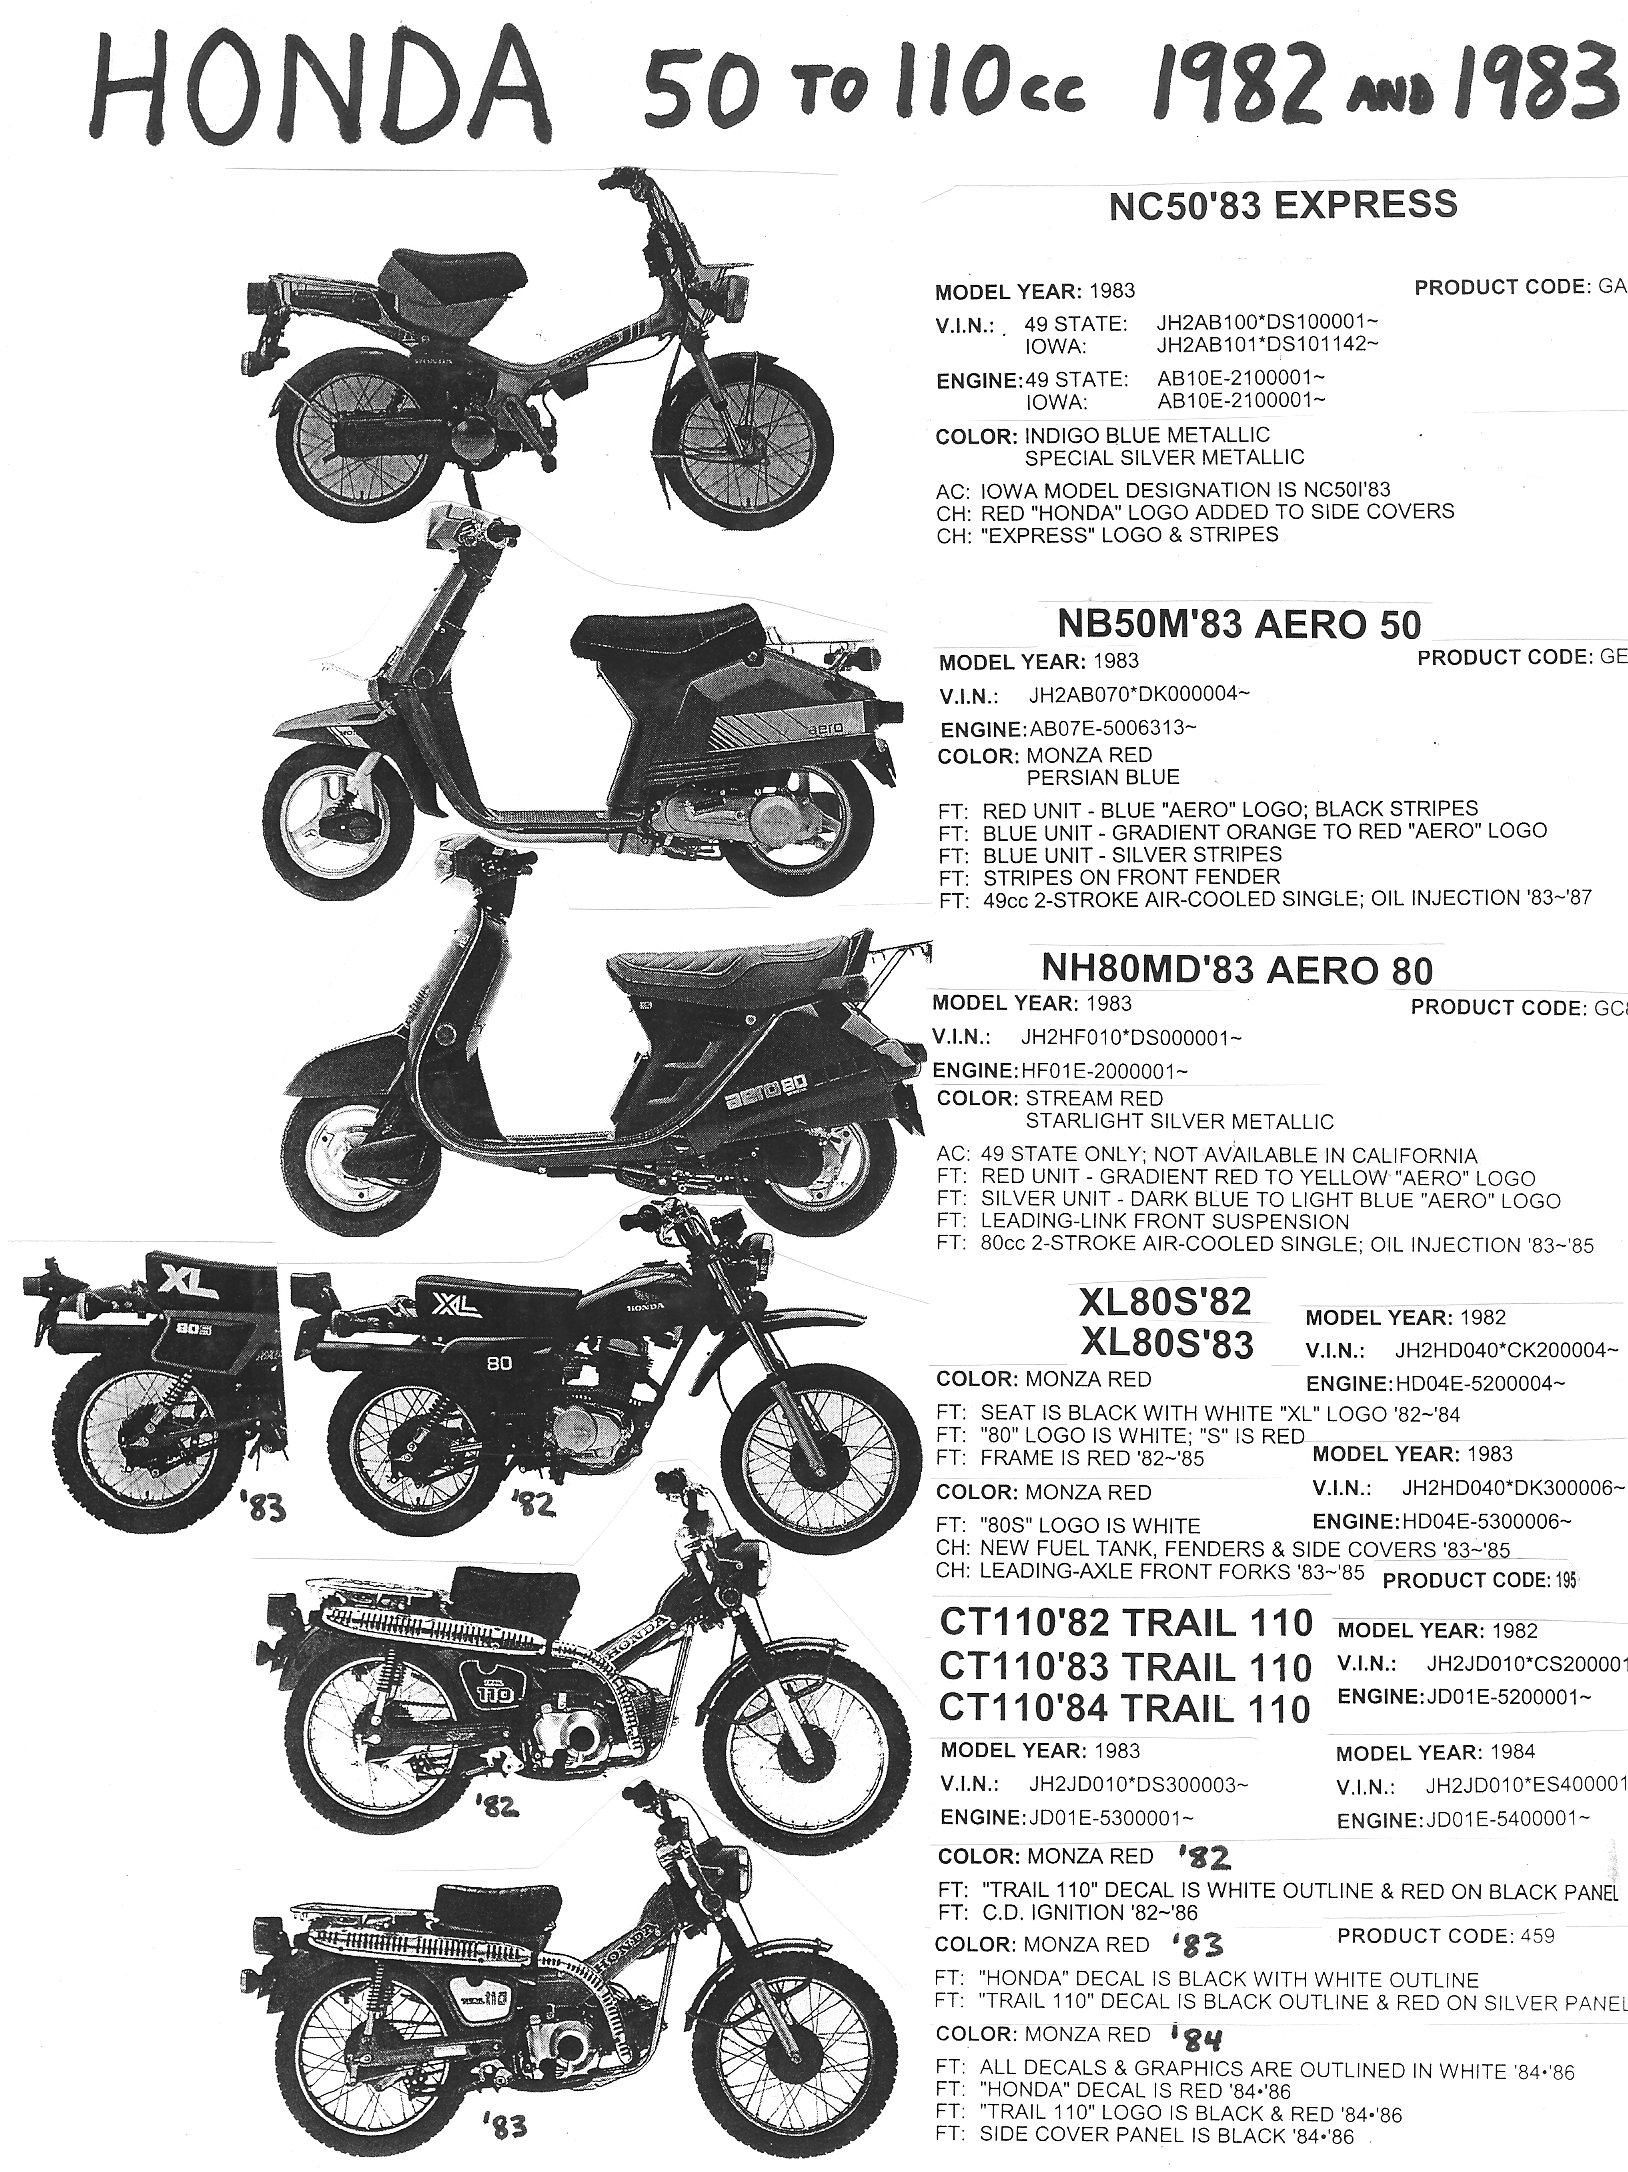 83 honda shadow 750 wiring diagram